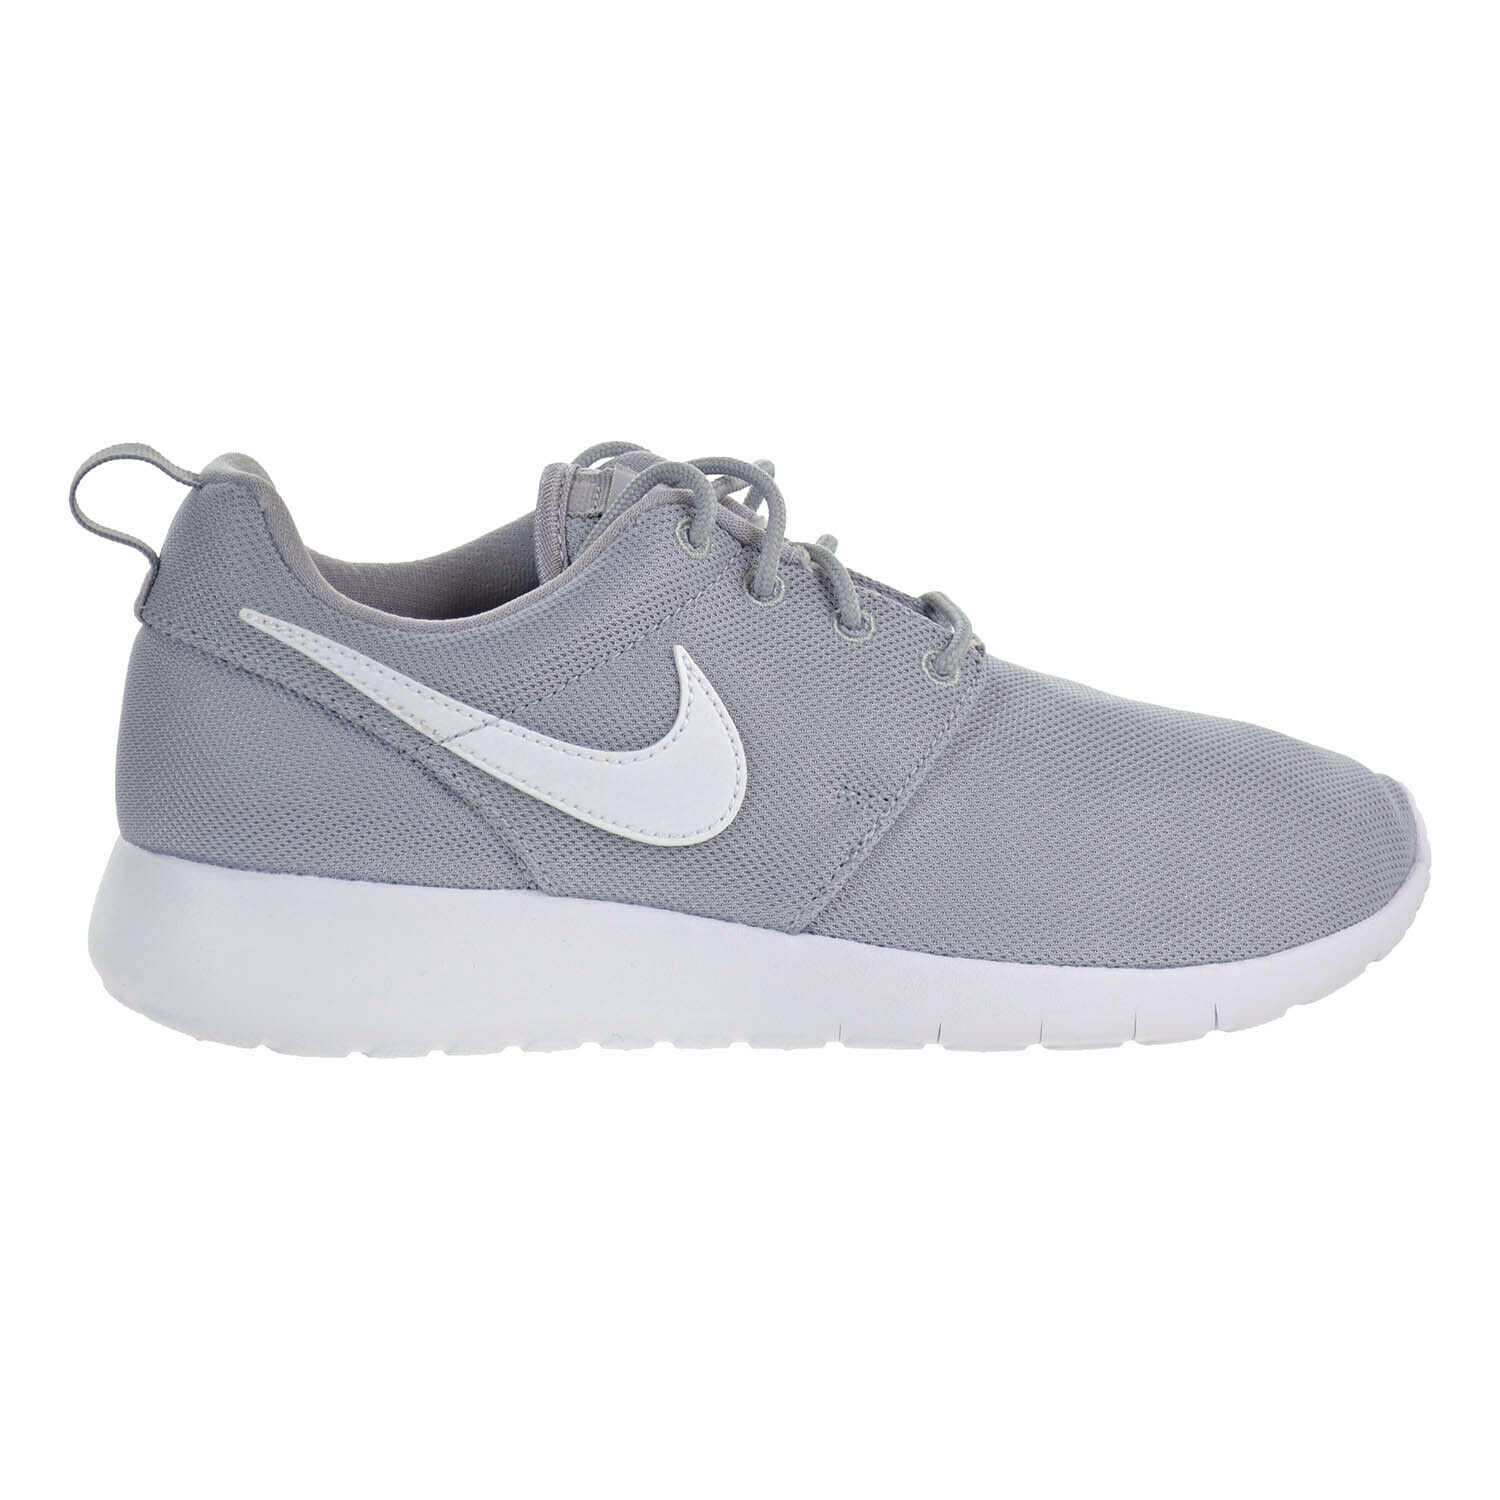 Nike Roshe One GS Big Kids Running shoes shoes shoes Wolf Grey White 599728-033 82b810